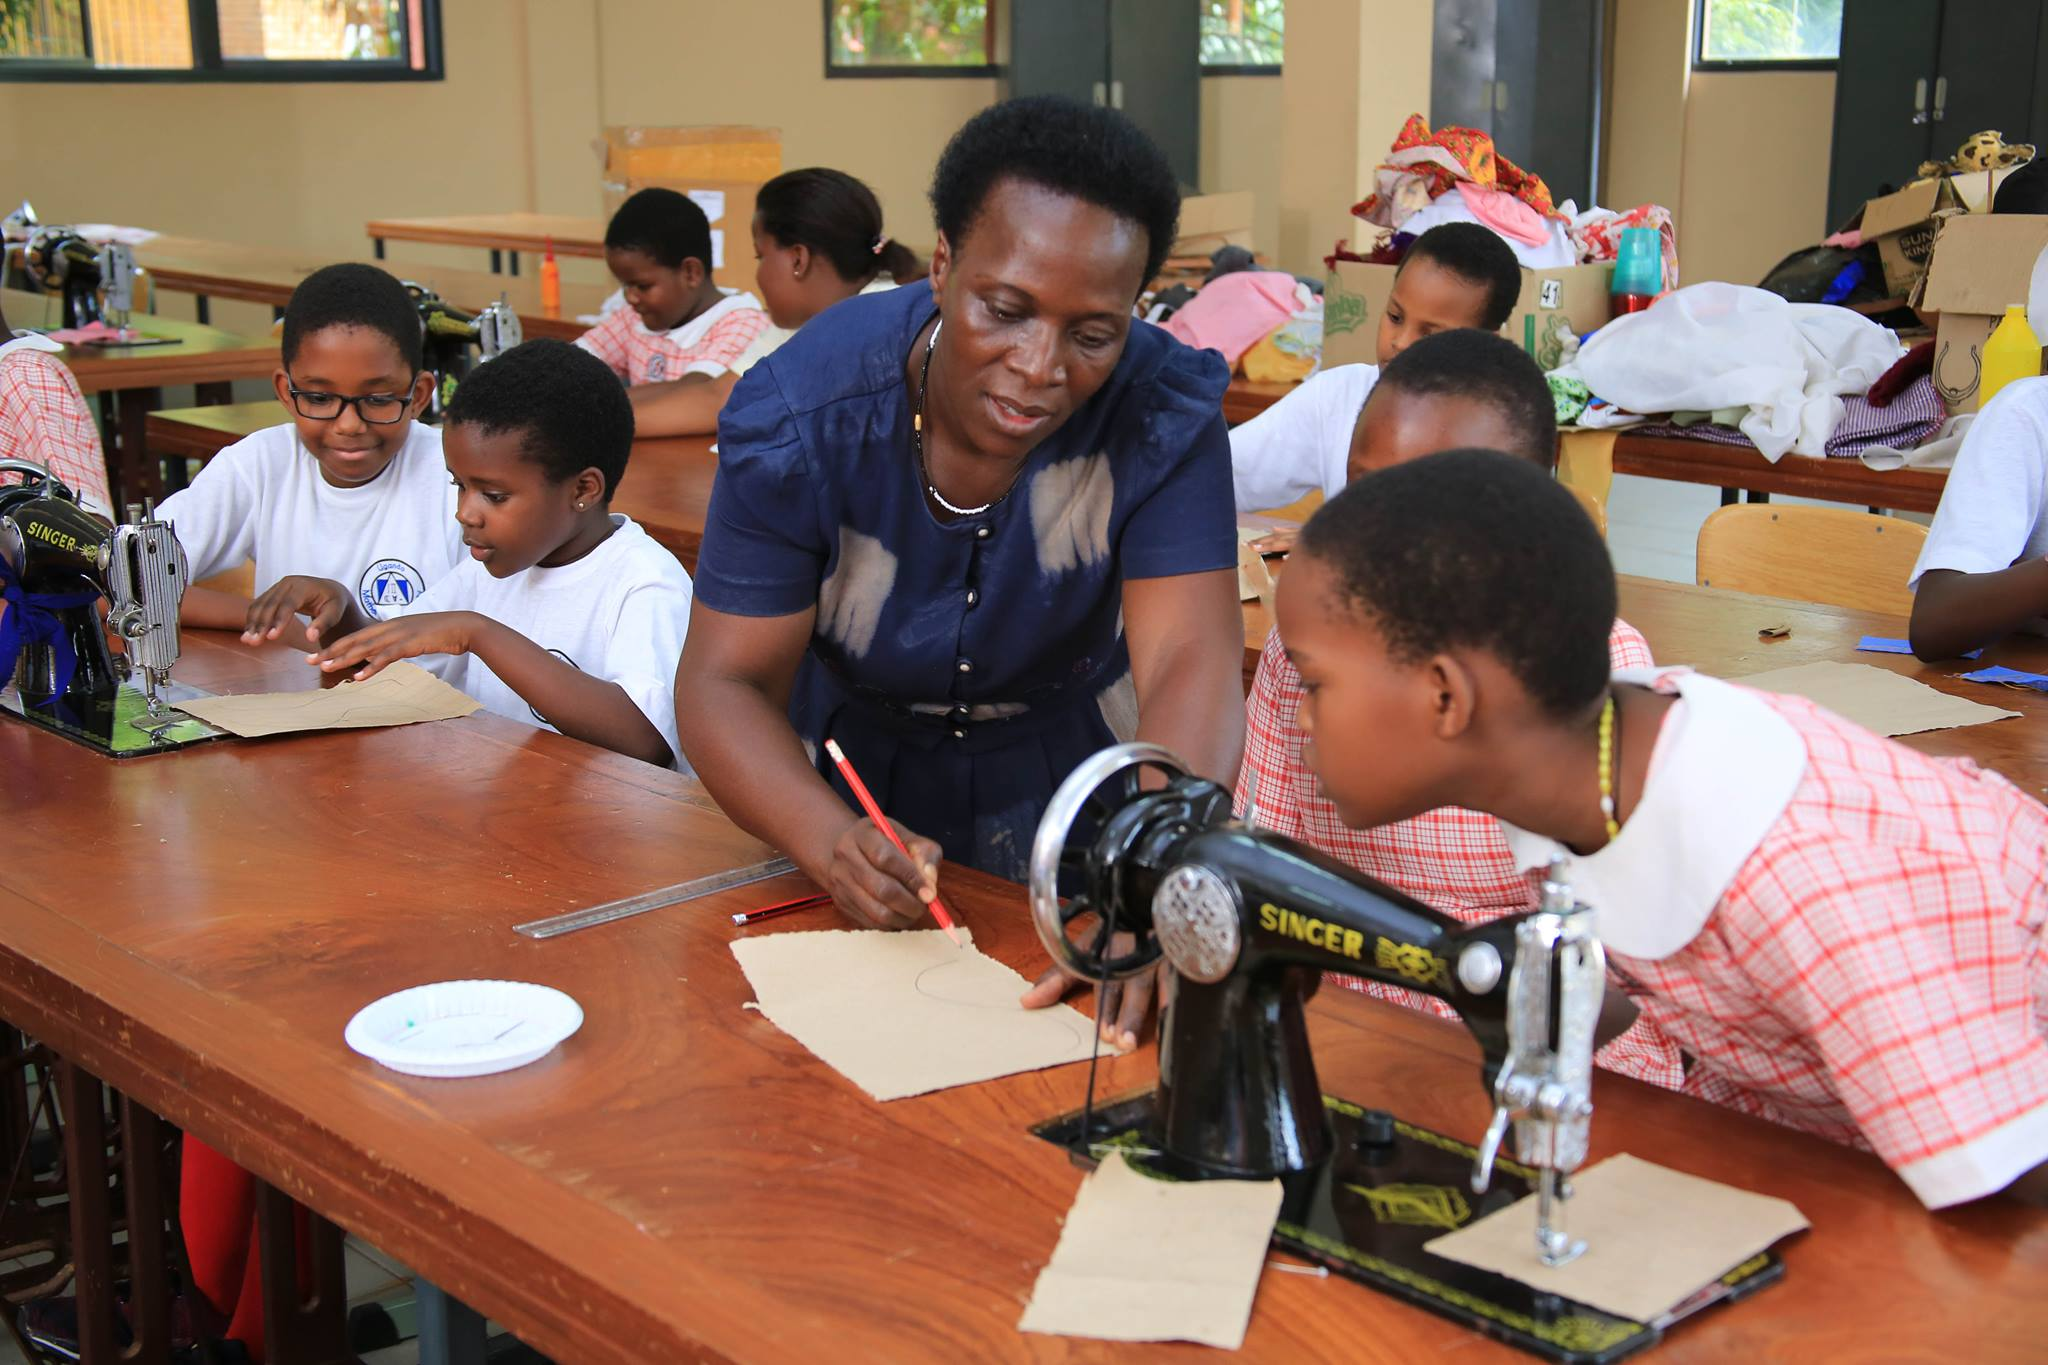 Kampala Parents' pupils attend a home economics lesson in the stitching room. The school believes in balanced education. The school's founders also believe that strengthening Uganda's sustainable wealth creation, employment and inclusive growth, requires equipping children with globally competitive skills, relevant knowledge and positive attitudes